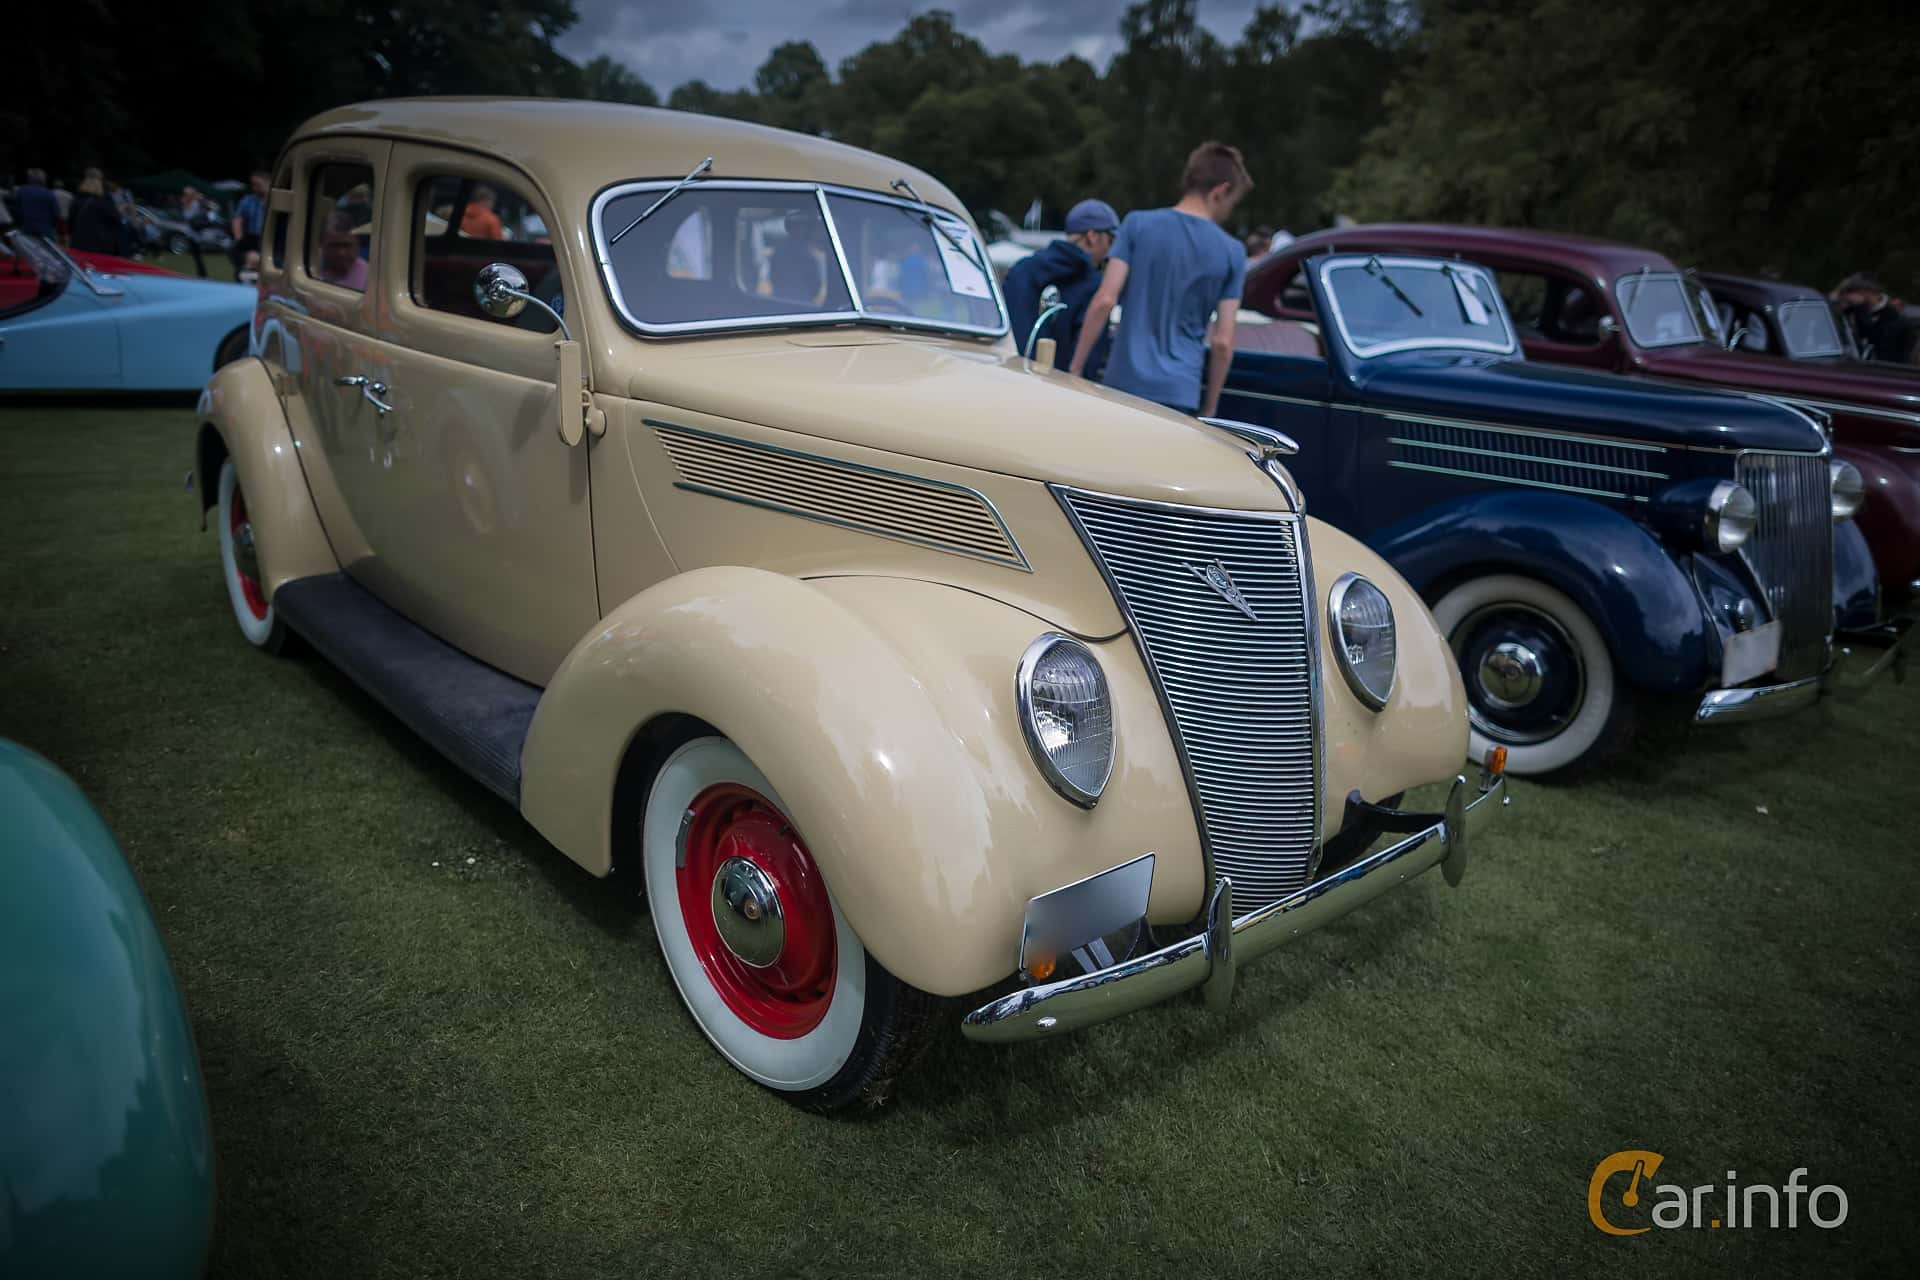 Ford Model 78 Fordor Touring Sedan 3.6 V8 Manual, 86hp, 1937 at Ronneby Nostalgia Festival 2015